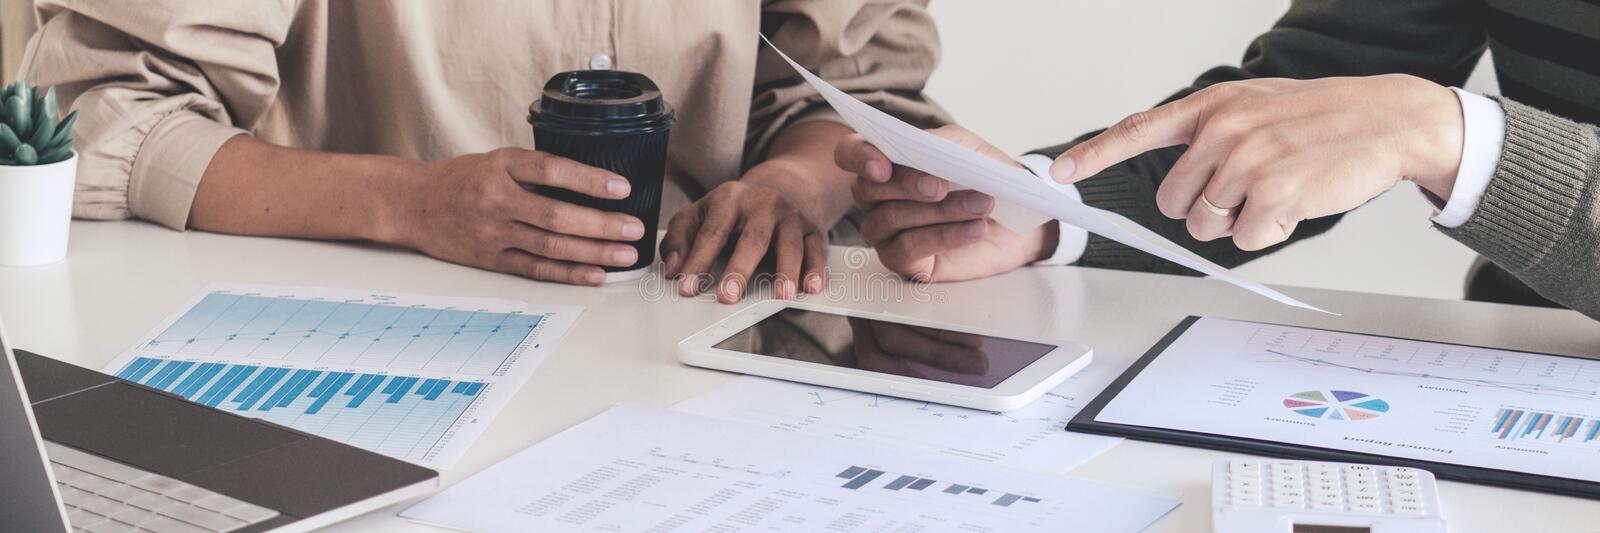 Working together on project, Two young business colleagues working or meeting with partner discussing financial documents and idea royalty free stock photos